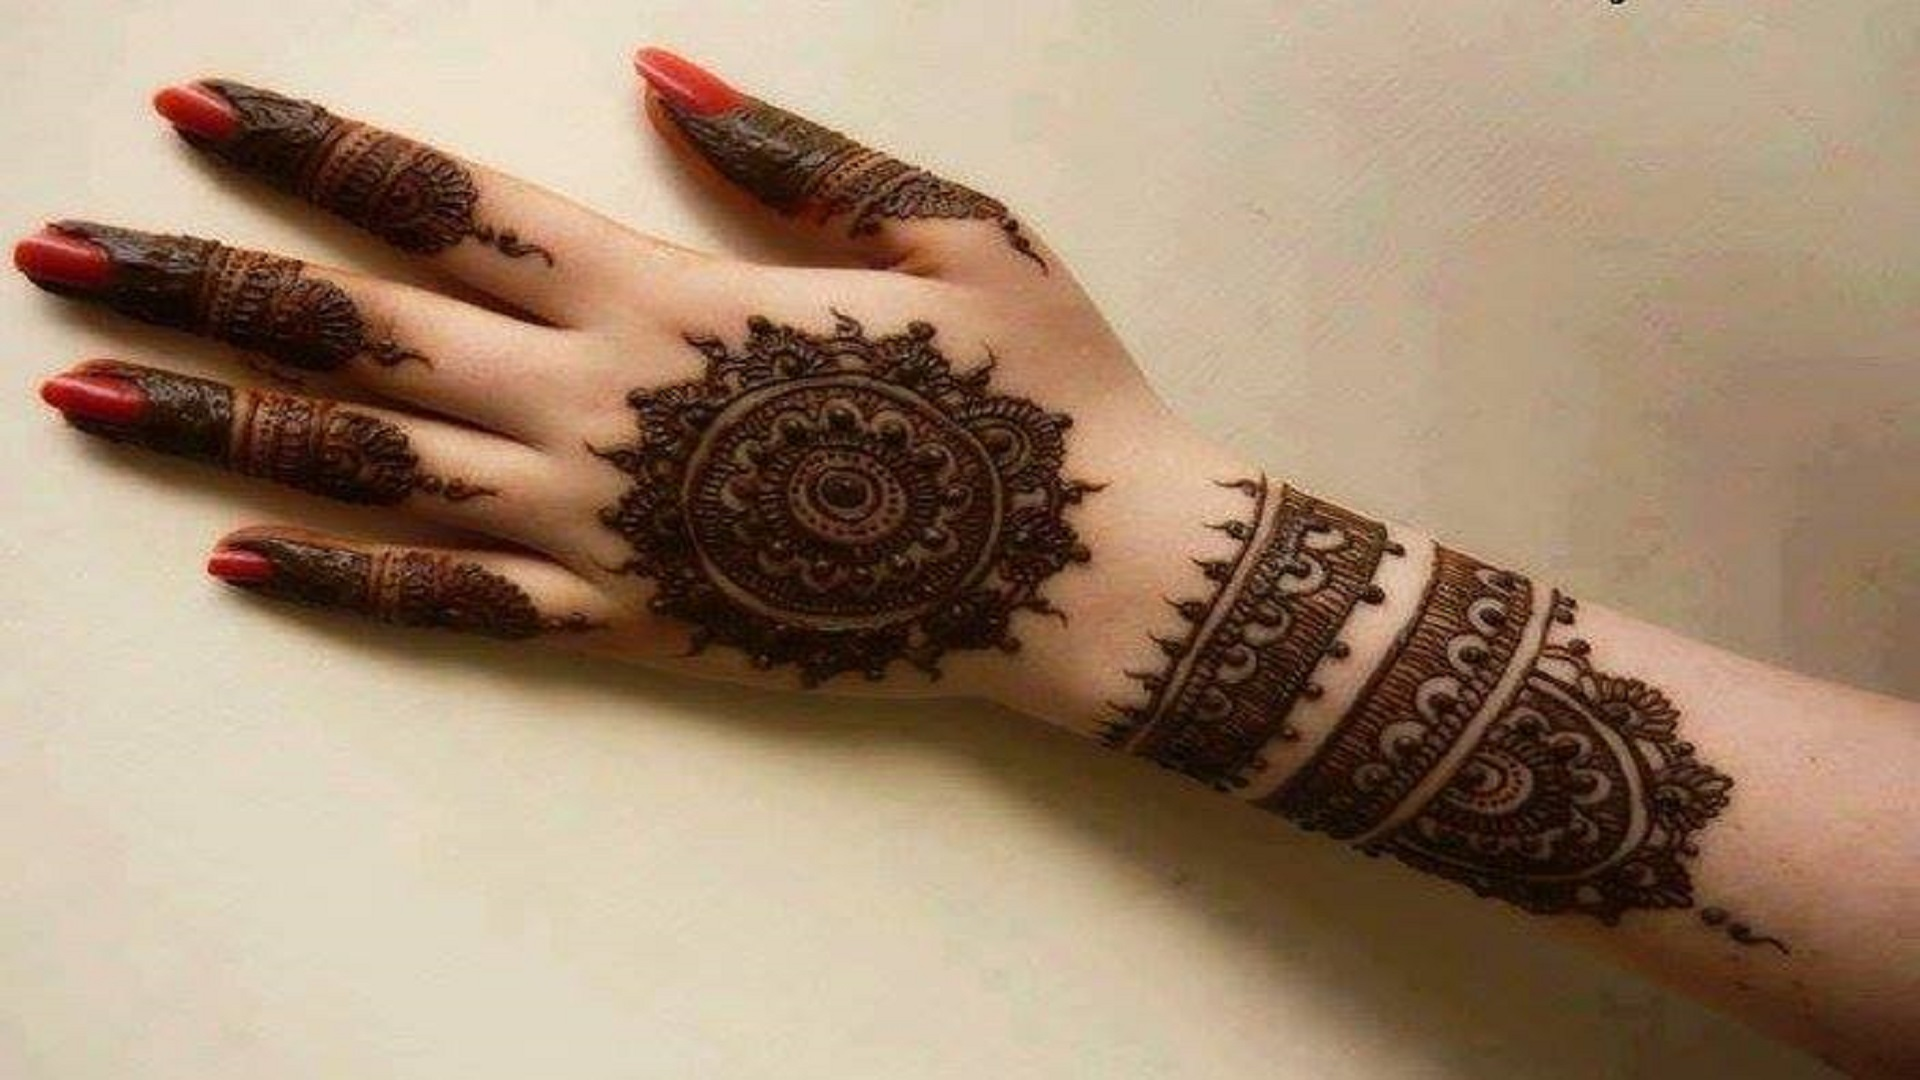 Simple Pakistani Girl Wallpaper New Collection Of Beautiful Mehndi Free Hd Wallpapers For